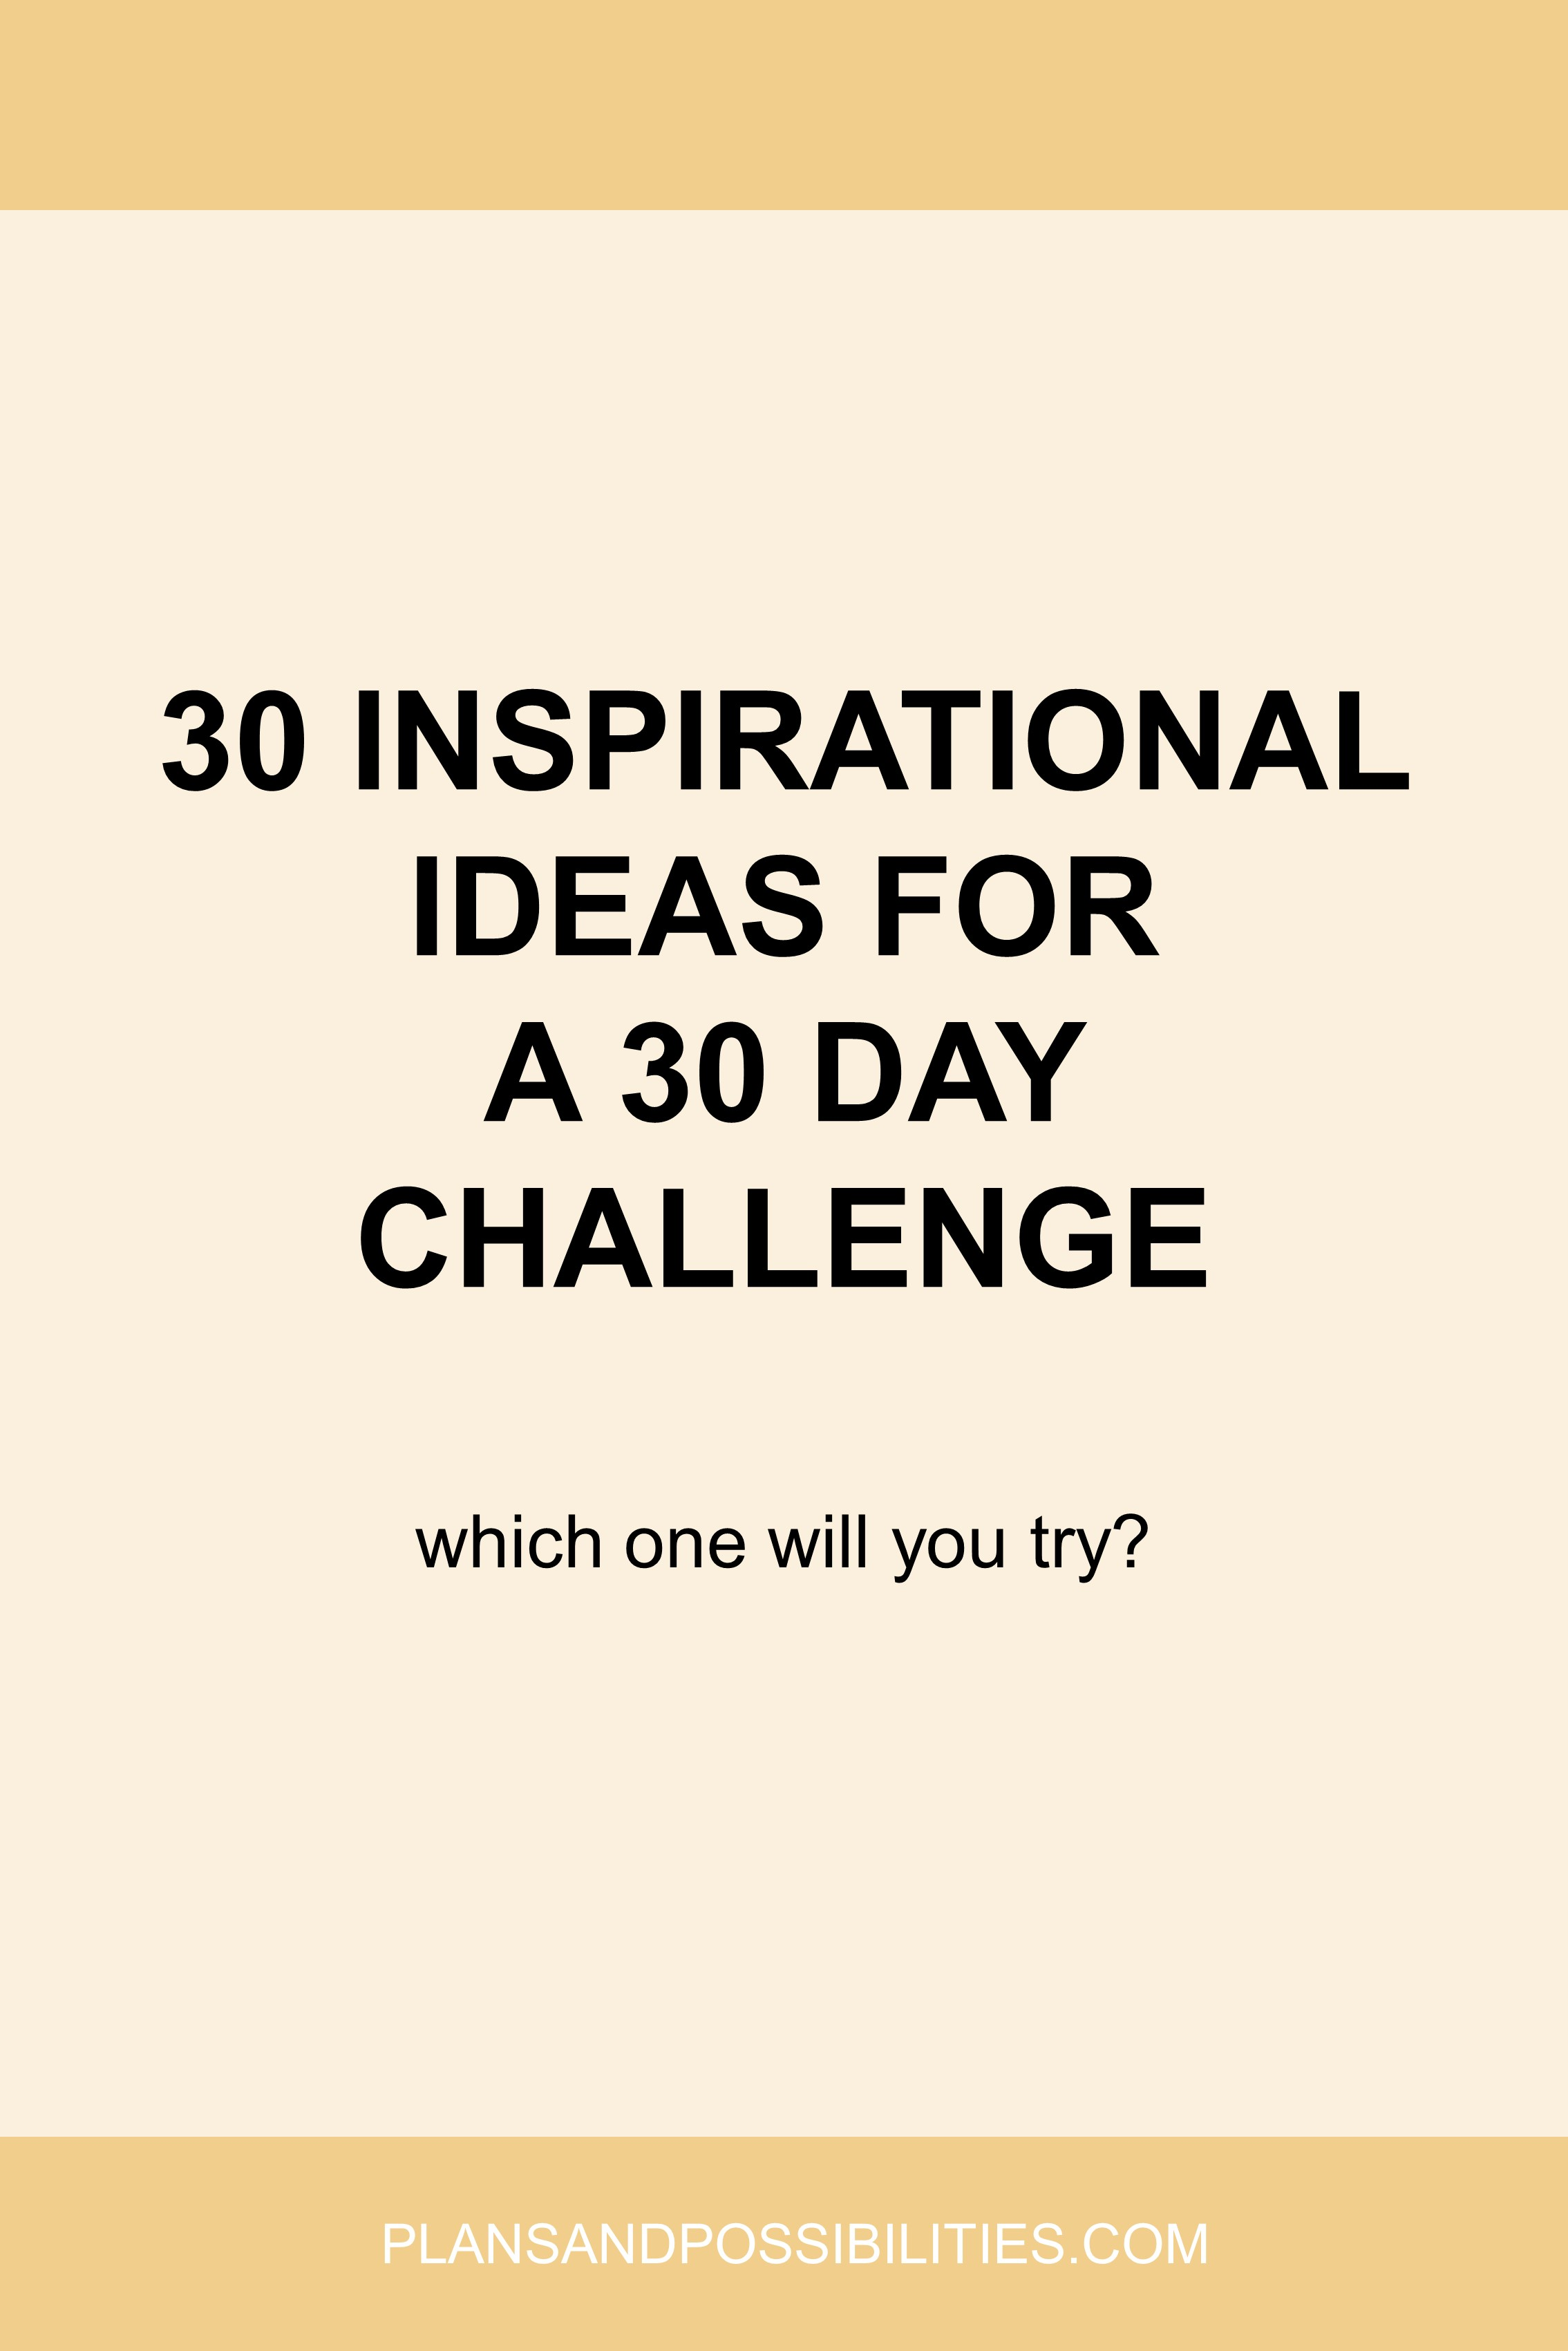 30 Inspirational Ideas For A 30 Day Challenge.jpg